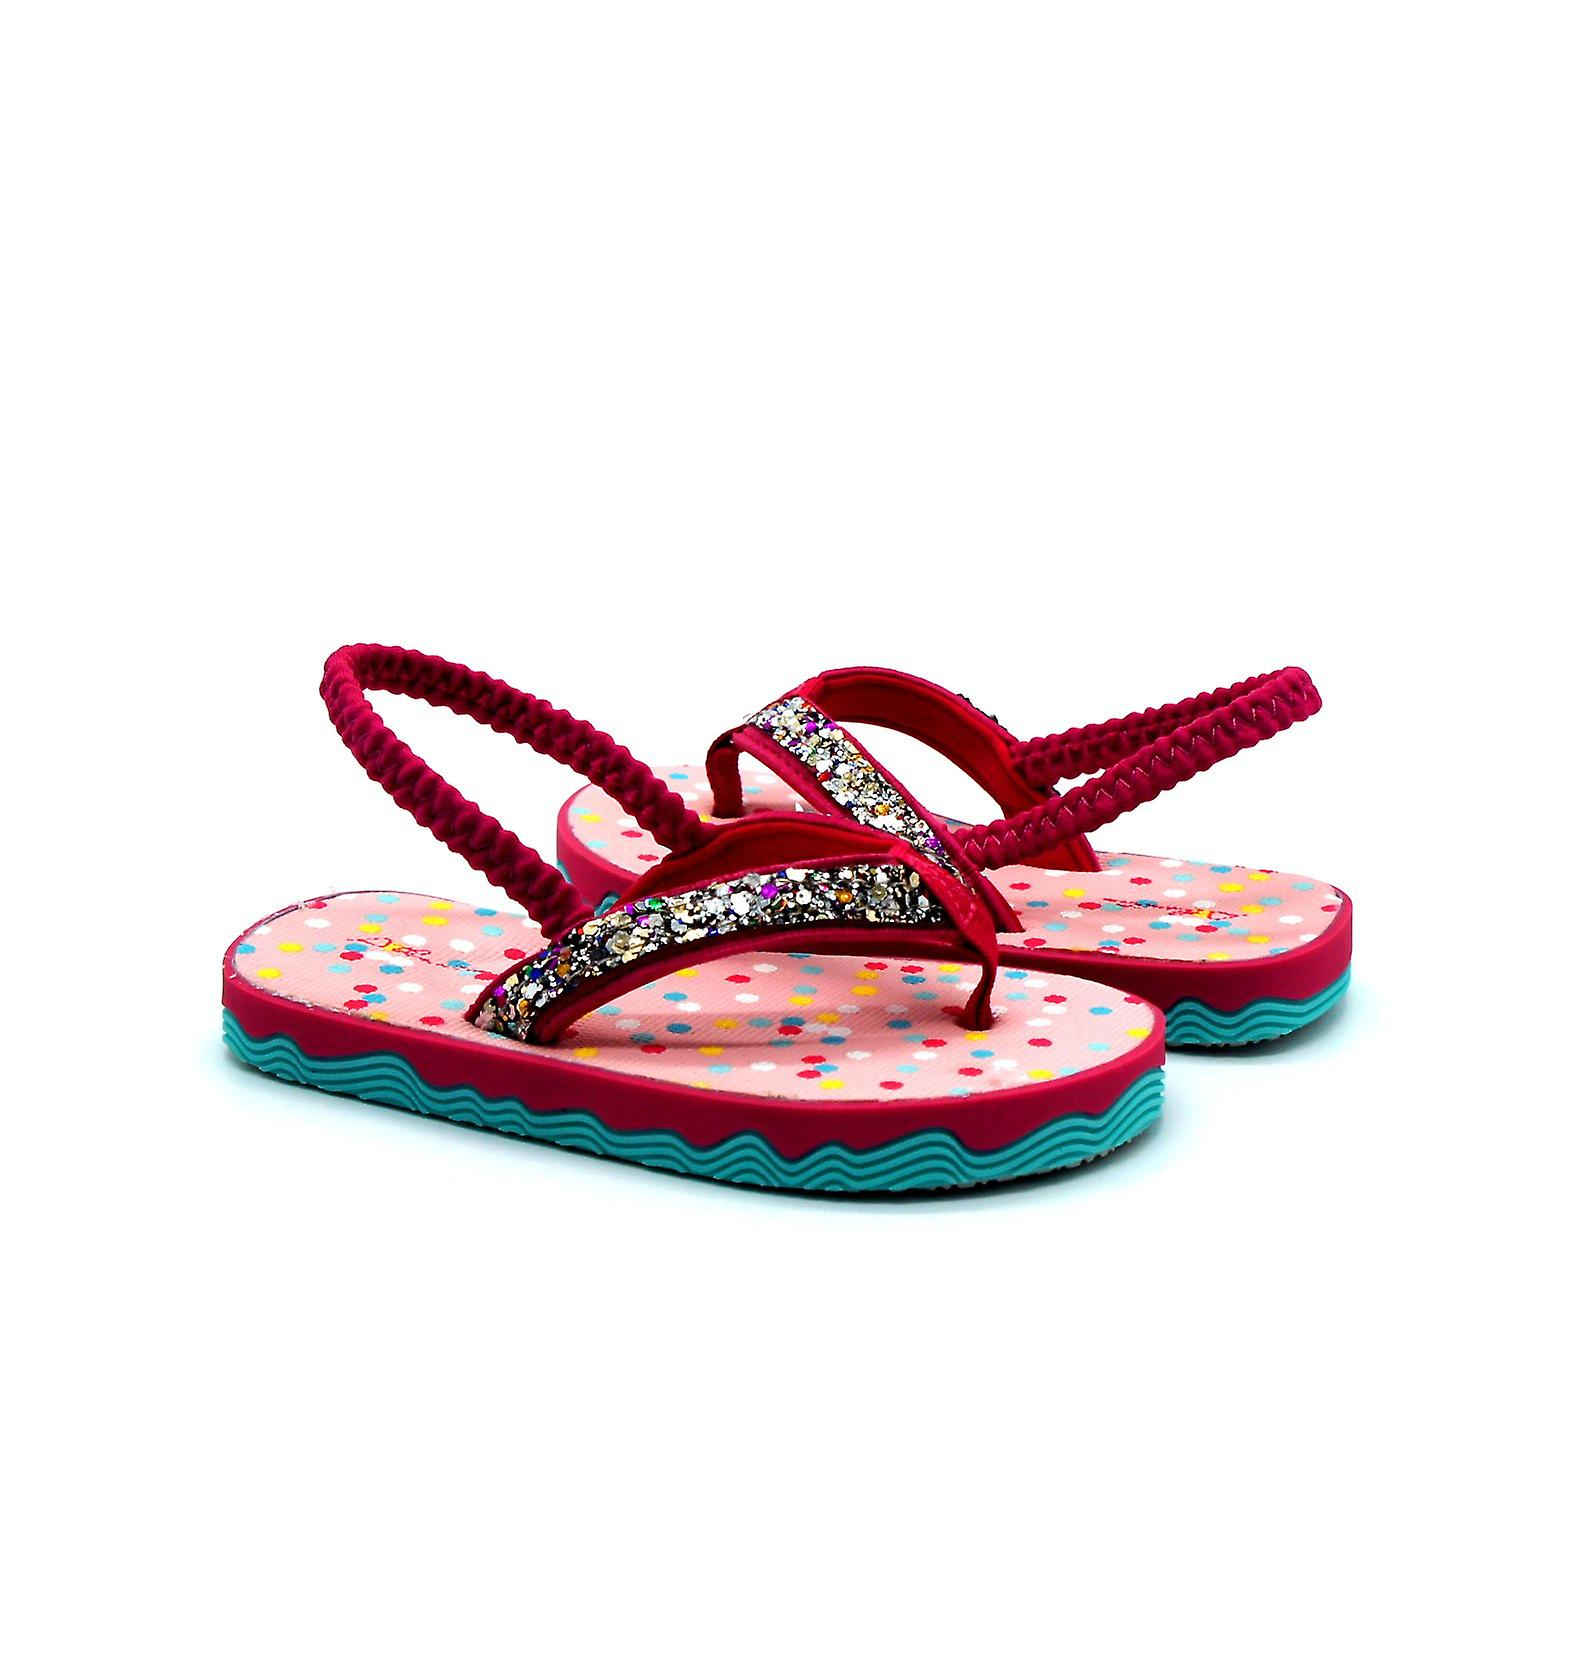 Atlantis Shoes Kids Girls Supportive Cushioned Comfortable Sandals Flip Flops Twinkle Fuchsia Pink